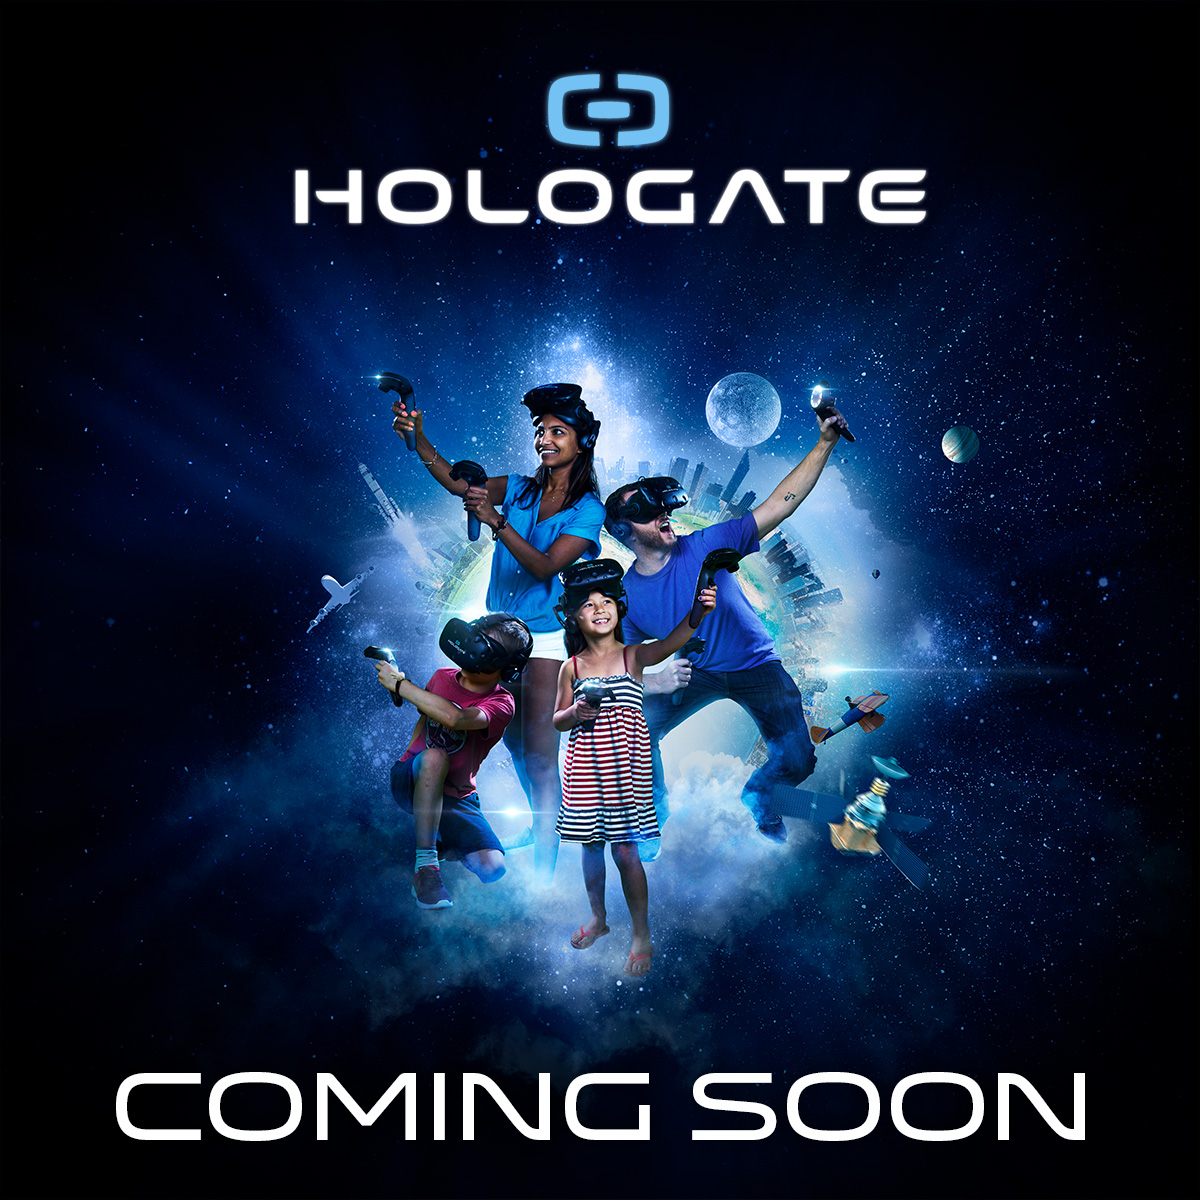 hologate-coming-soon-3